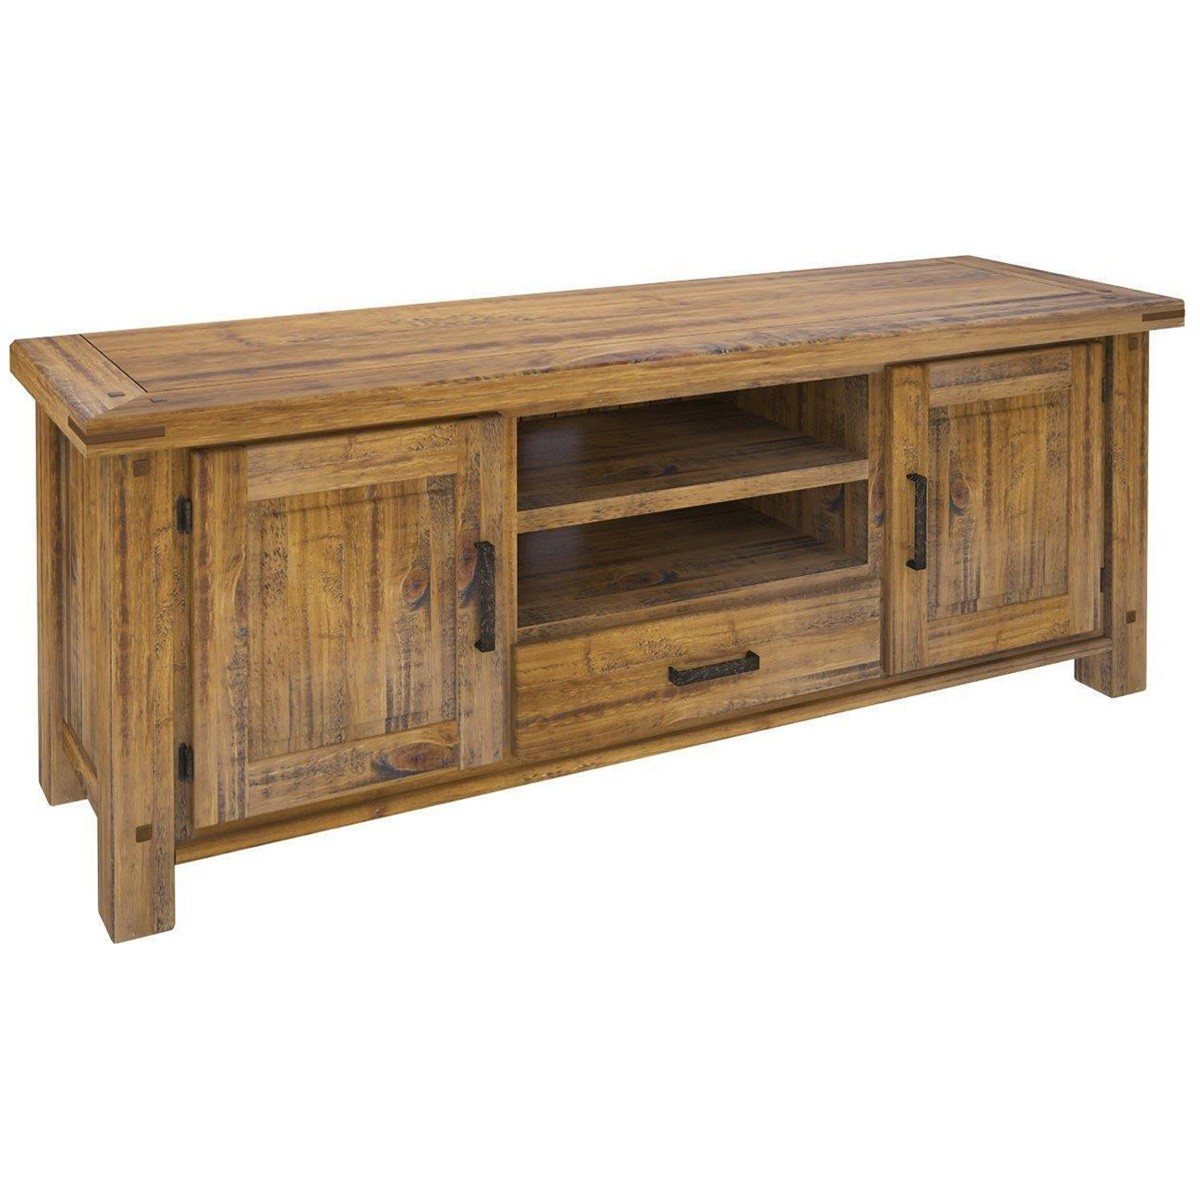 Serafin Rustic Pine Timber 2 Door 1 Drawer TV Unit, 180cm